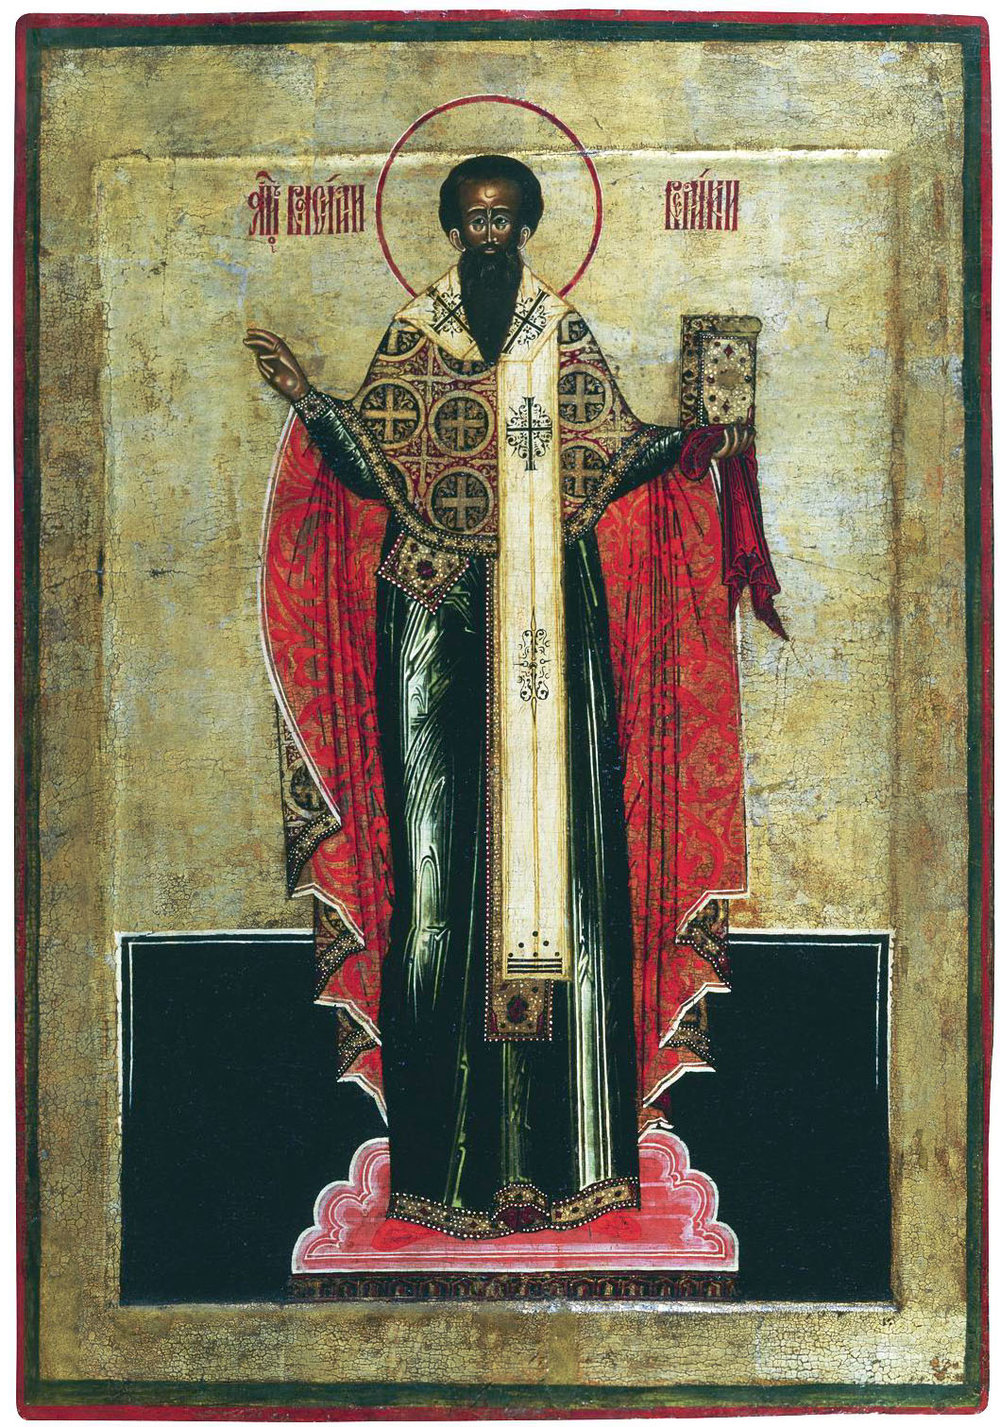 Russian icon of Basil of Caesarea